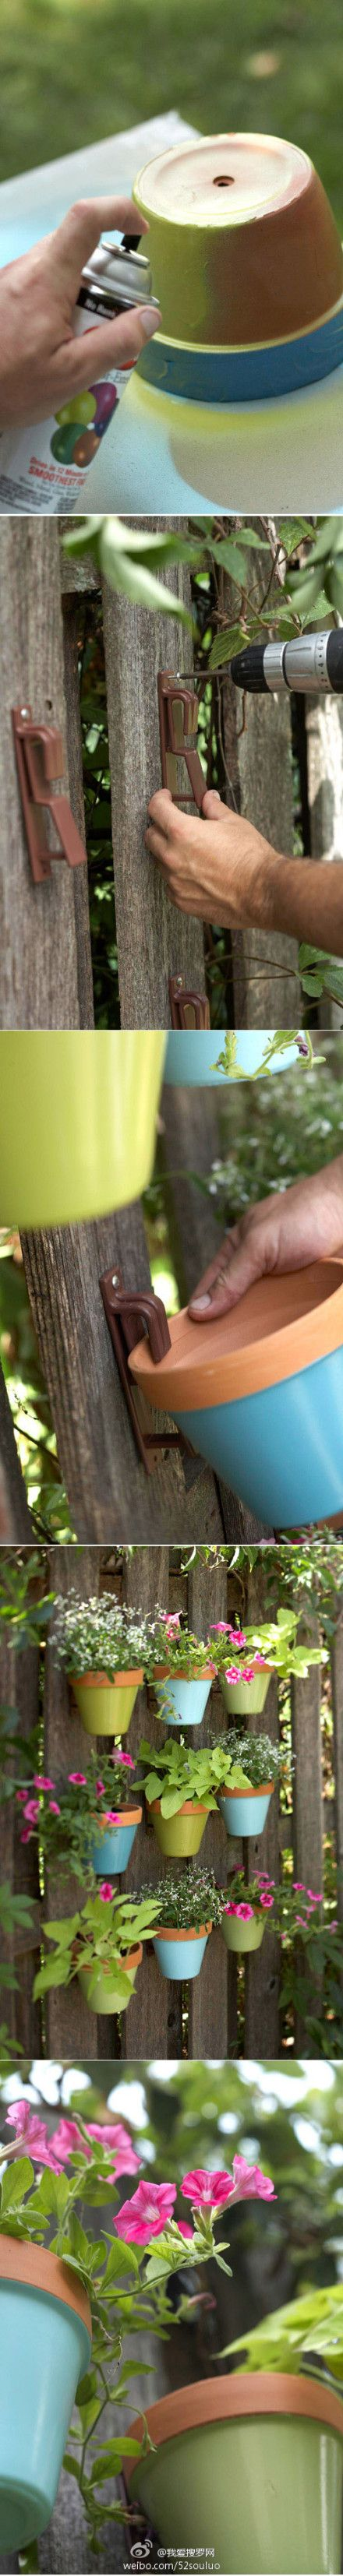 SaiFou Image | Welcome to SaiFou – Inspiring images                              Securing pots to fence